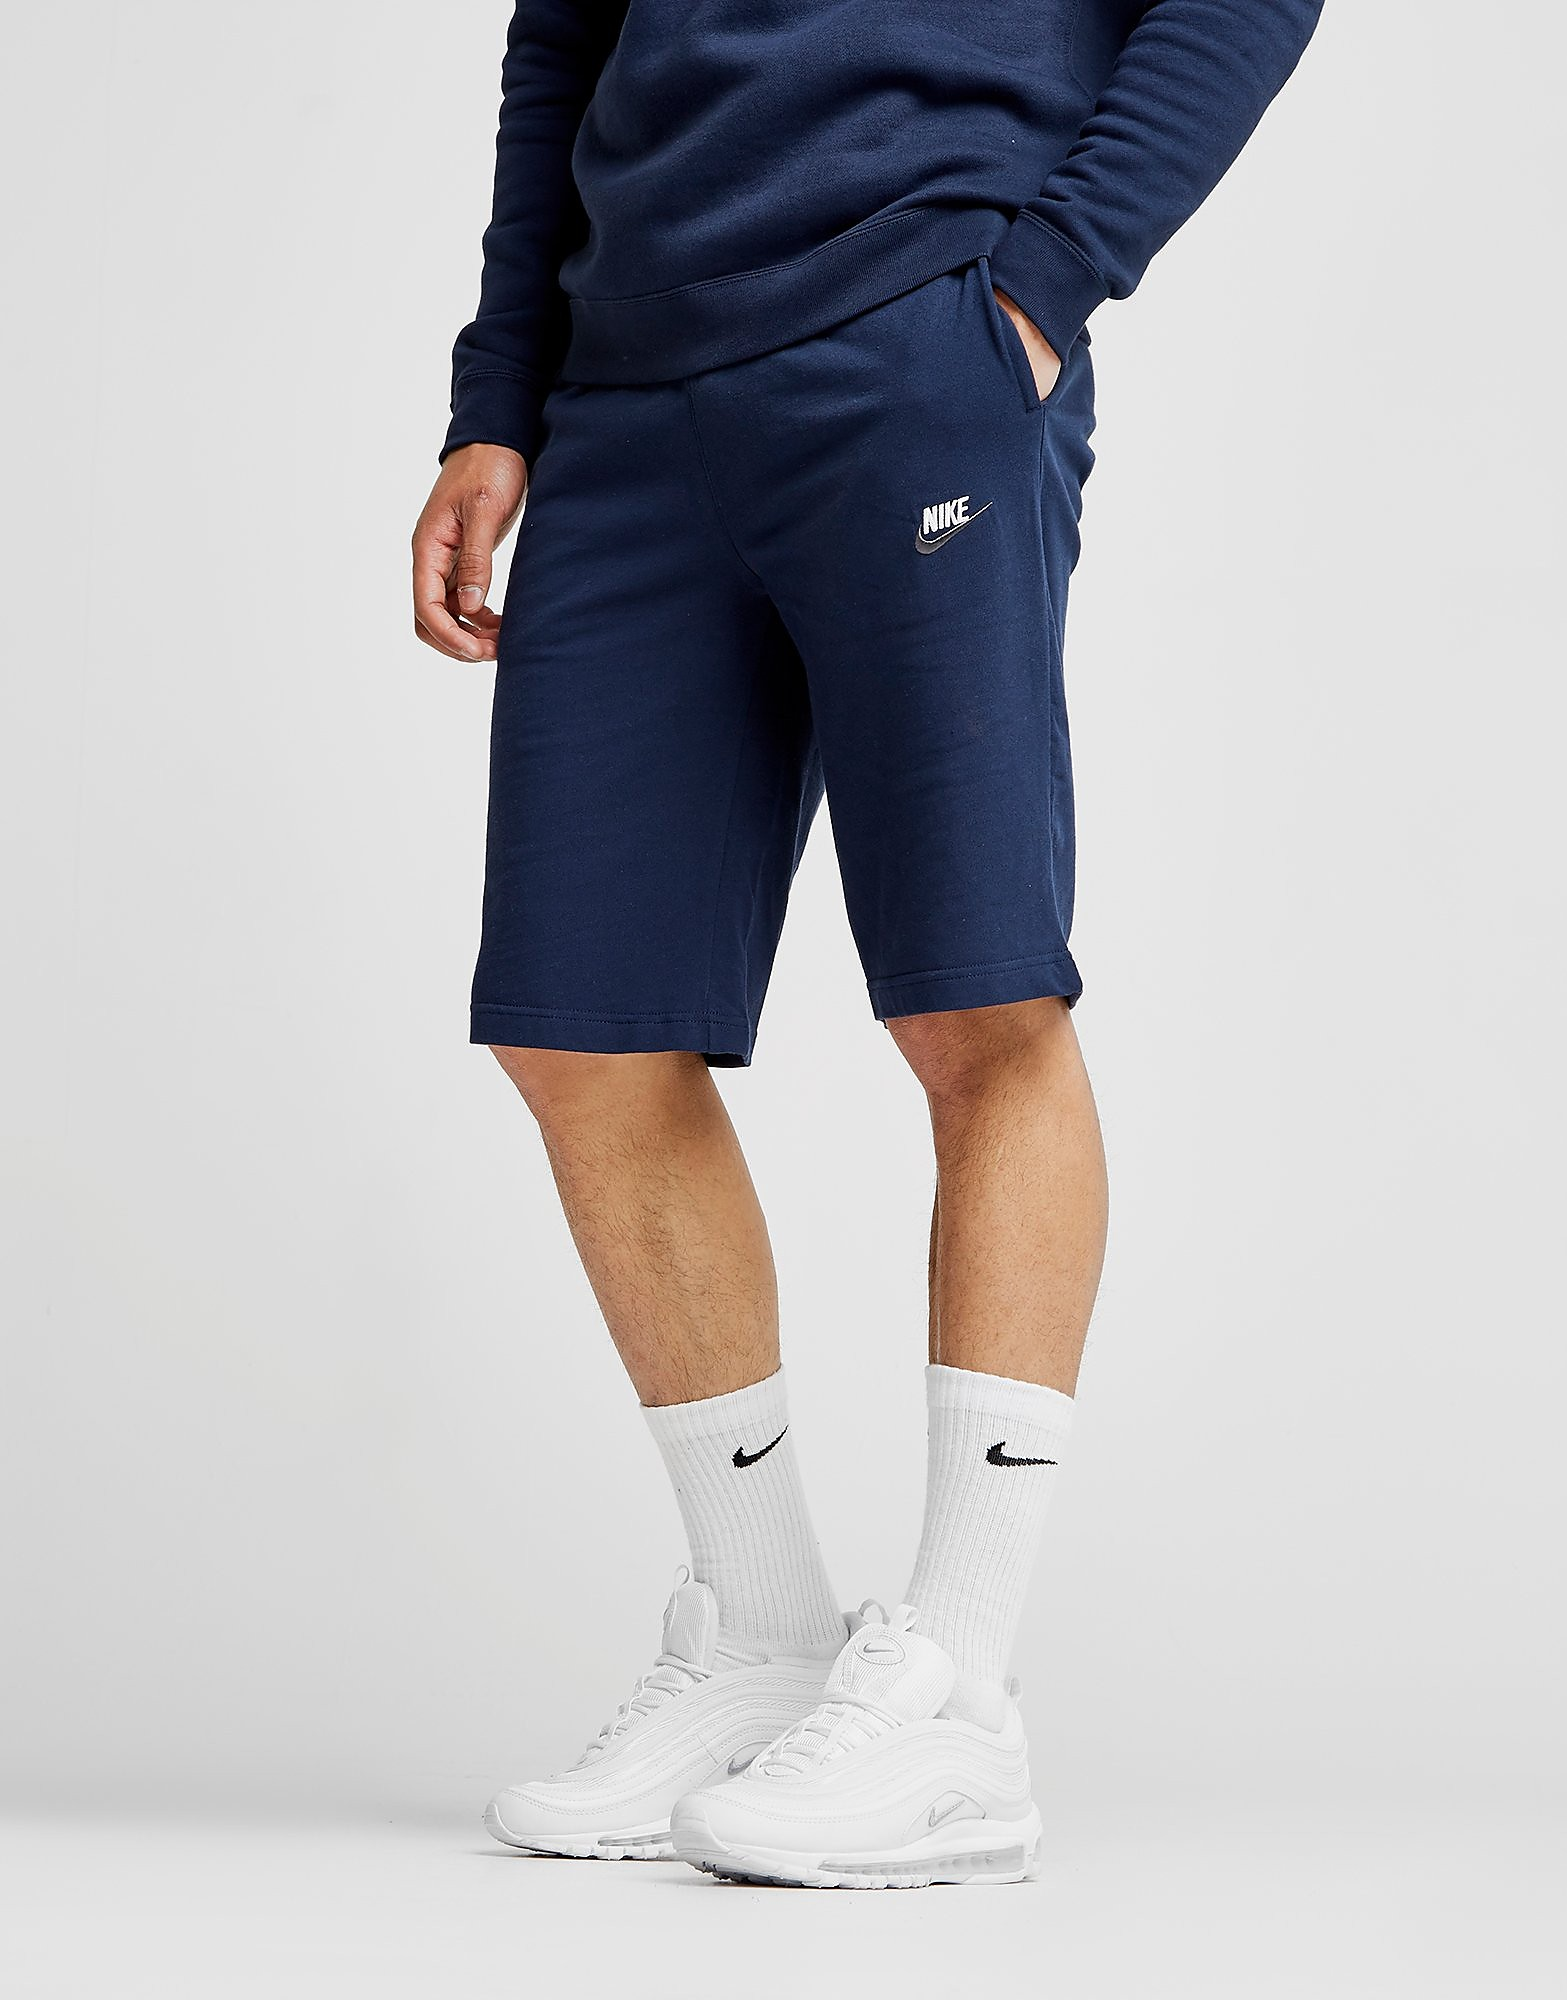 Nike Short Foundation 2 Homme